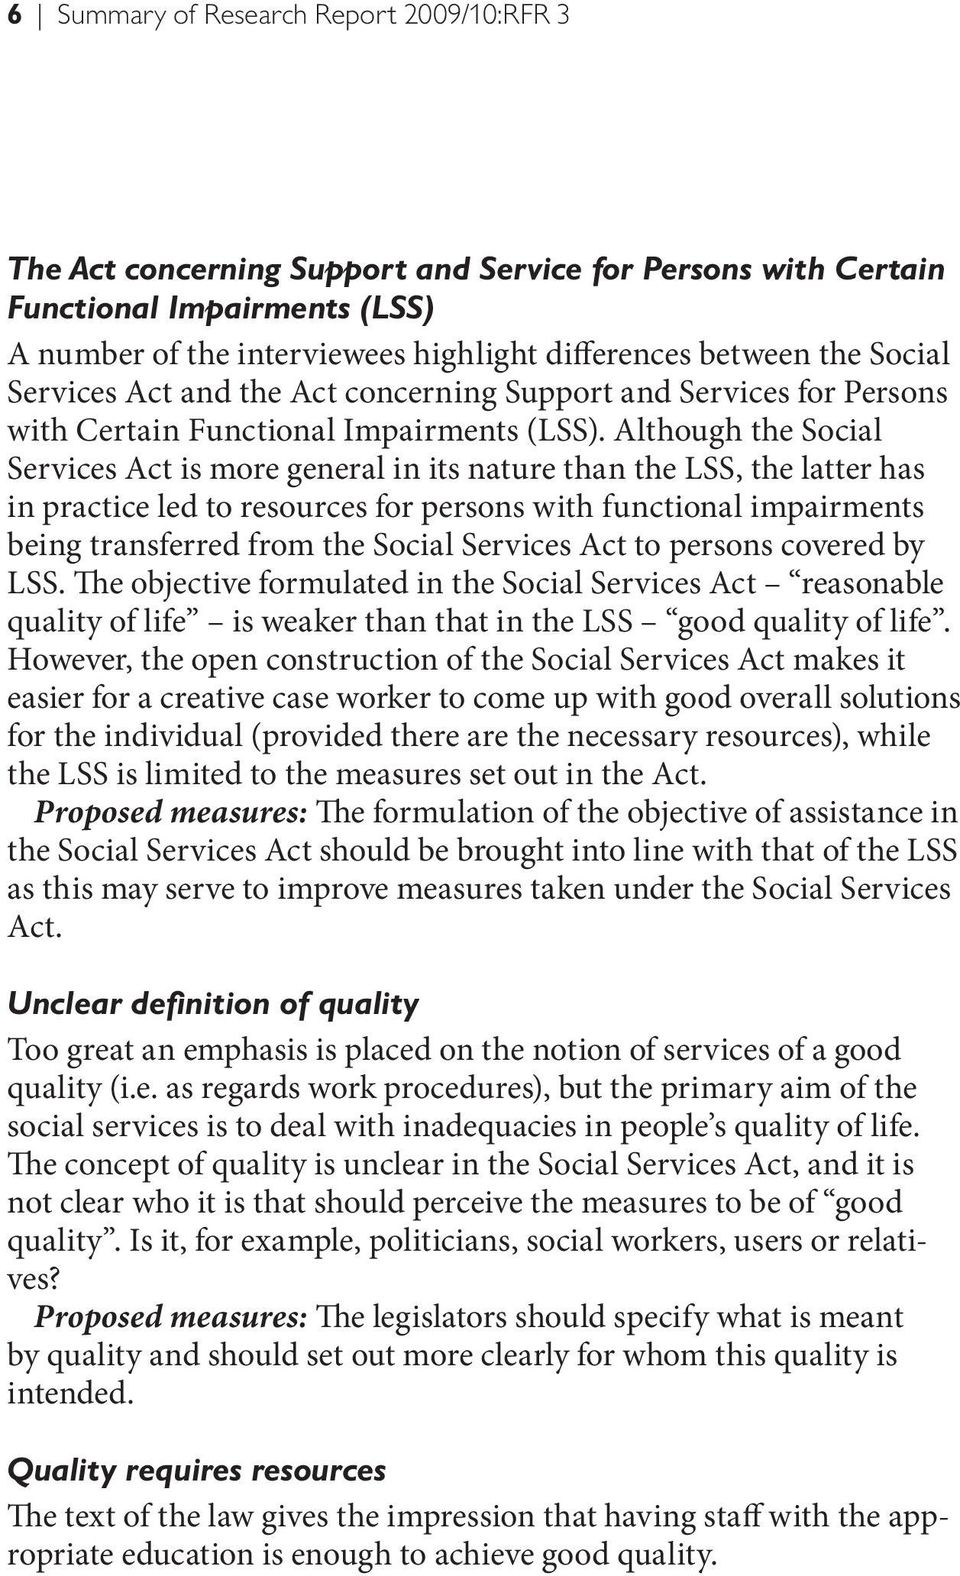 Although the Social Services Act is more general in its nature than the LSS, the latter has in practice led to resources for persons with functional impairments being transferred from the Social